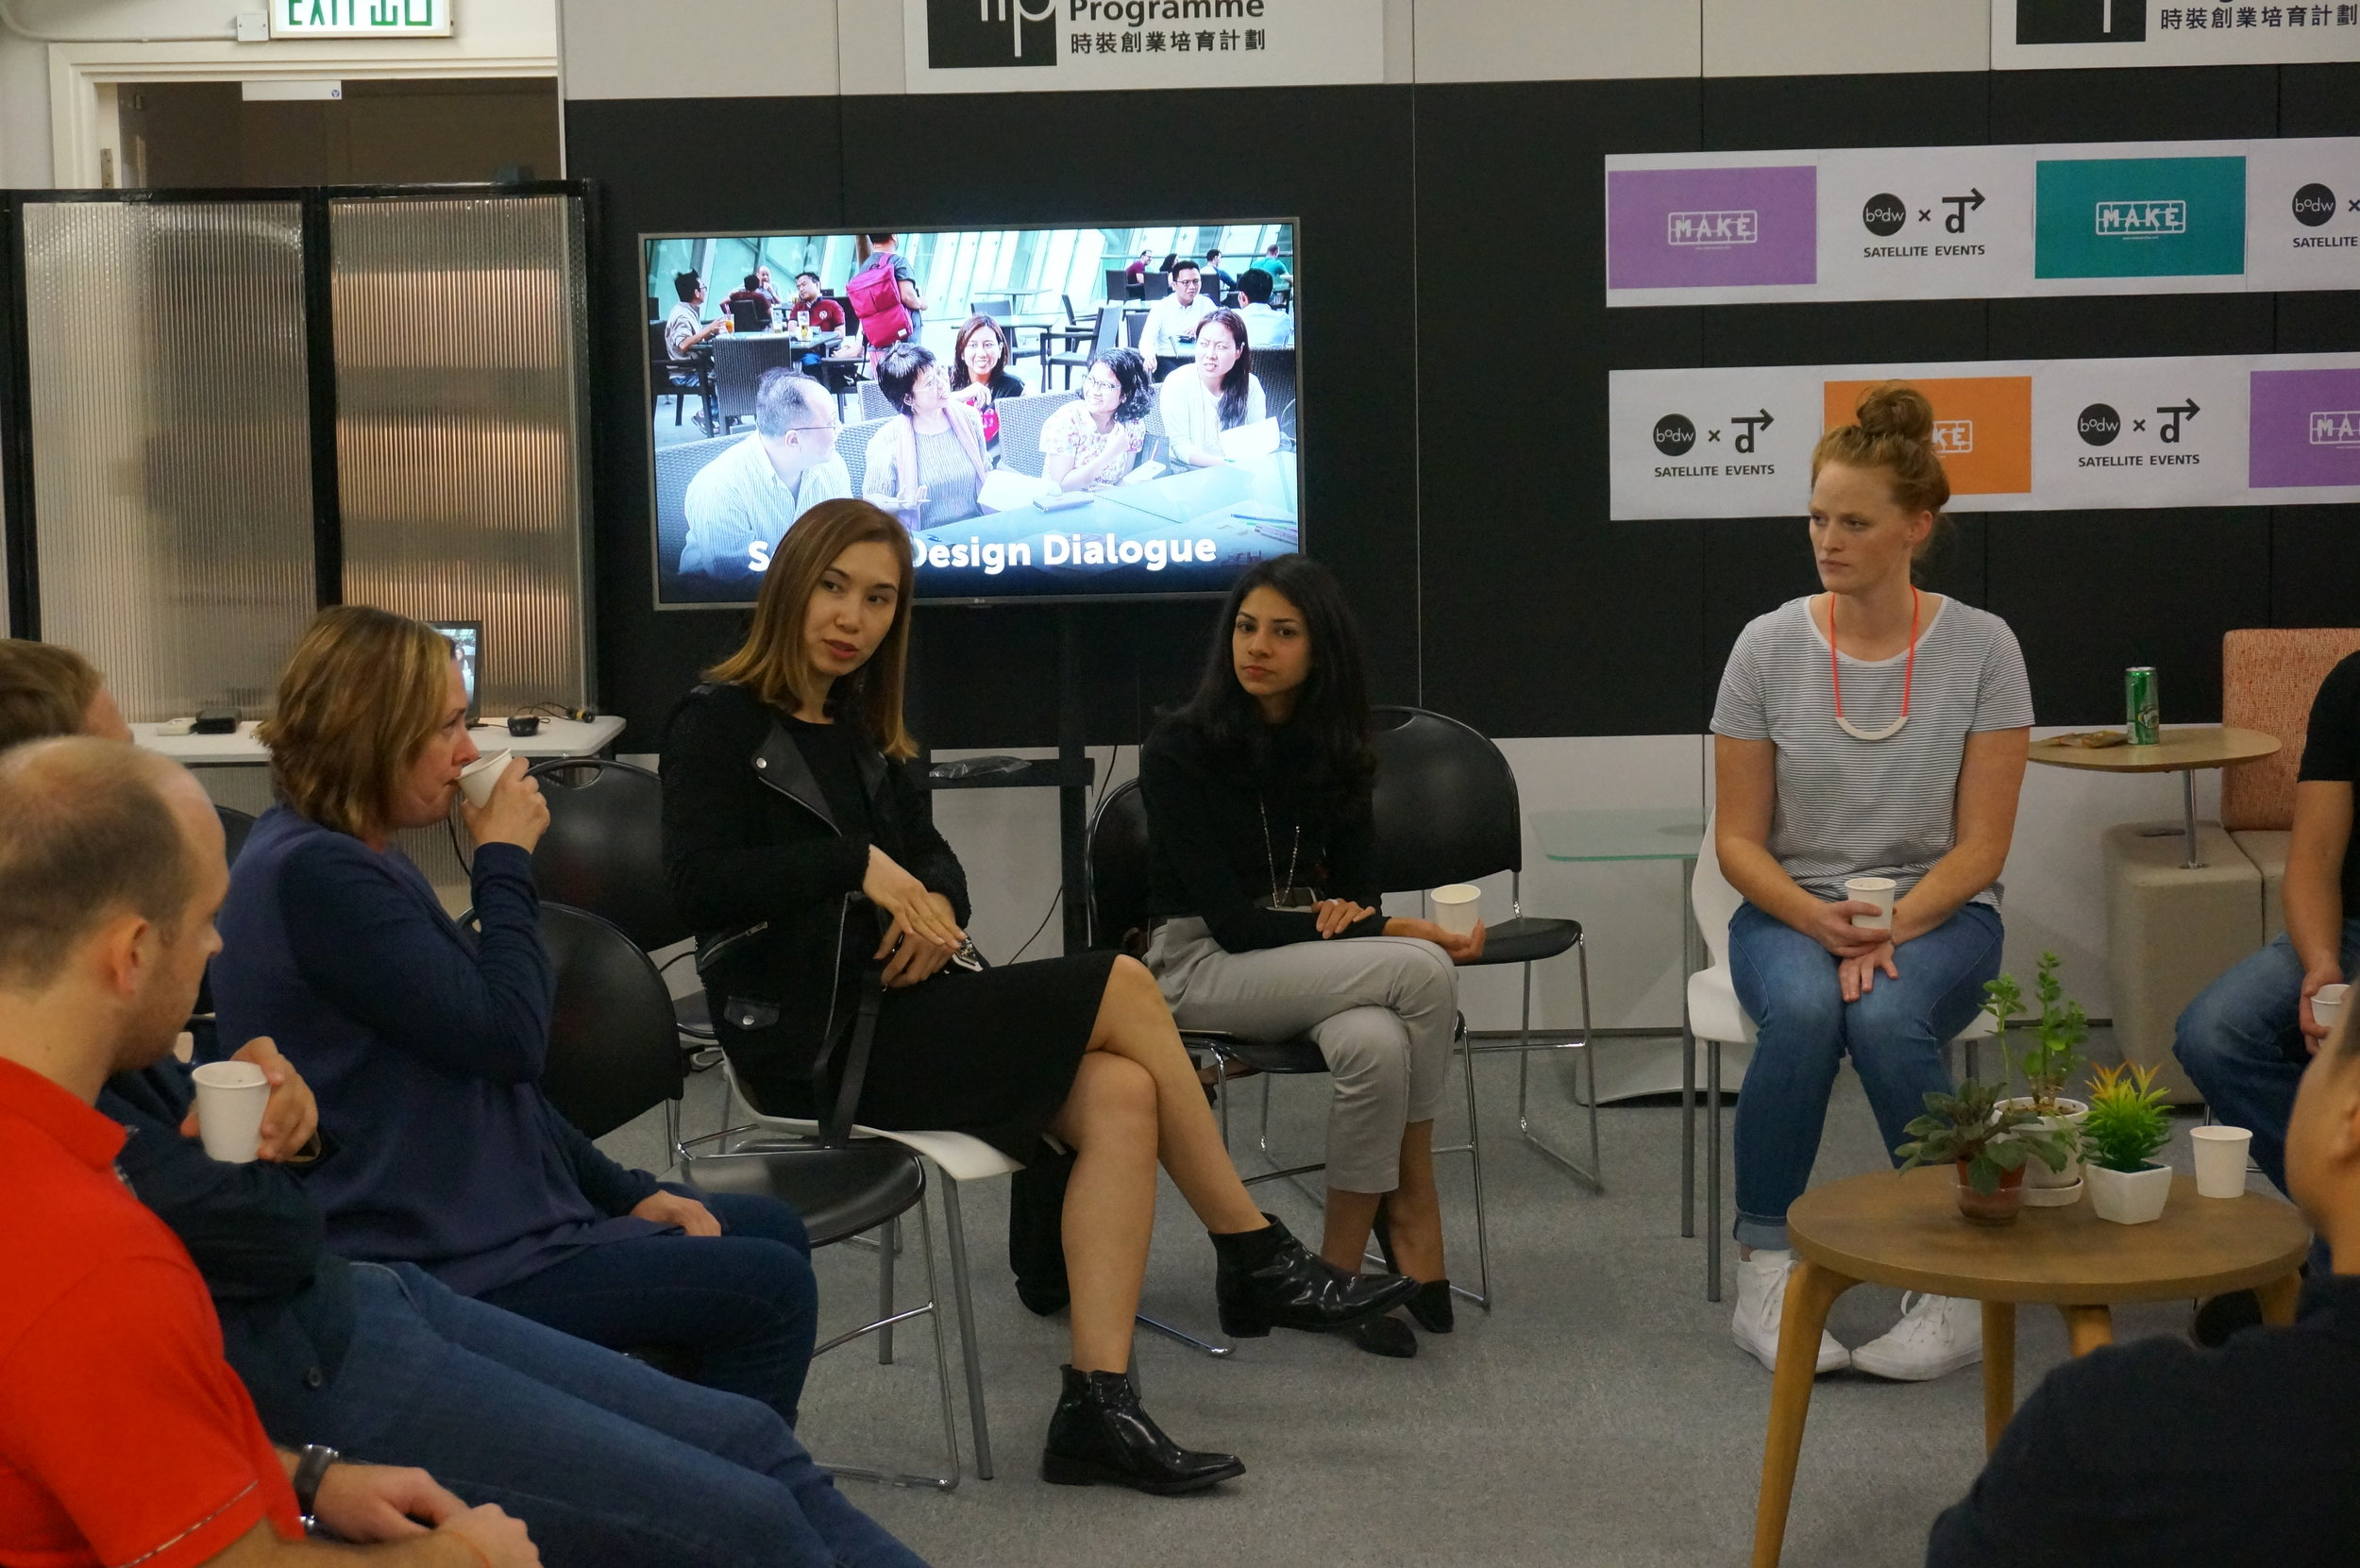 Design Dialogues - We tackle complex challenges and share ideas around a specific theme